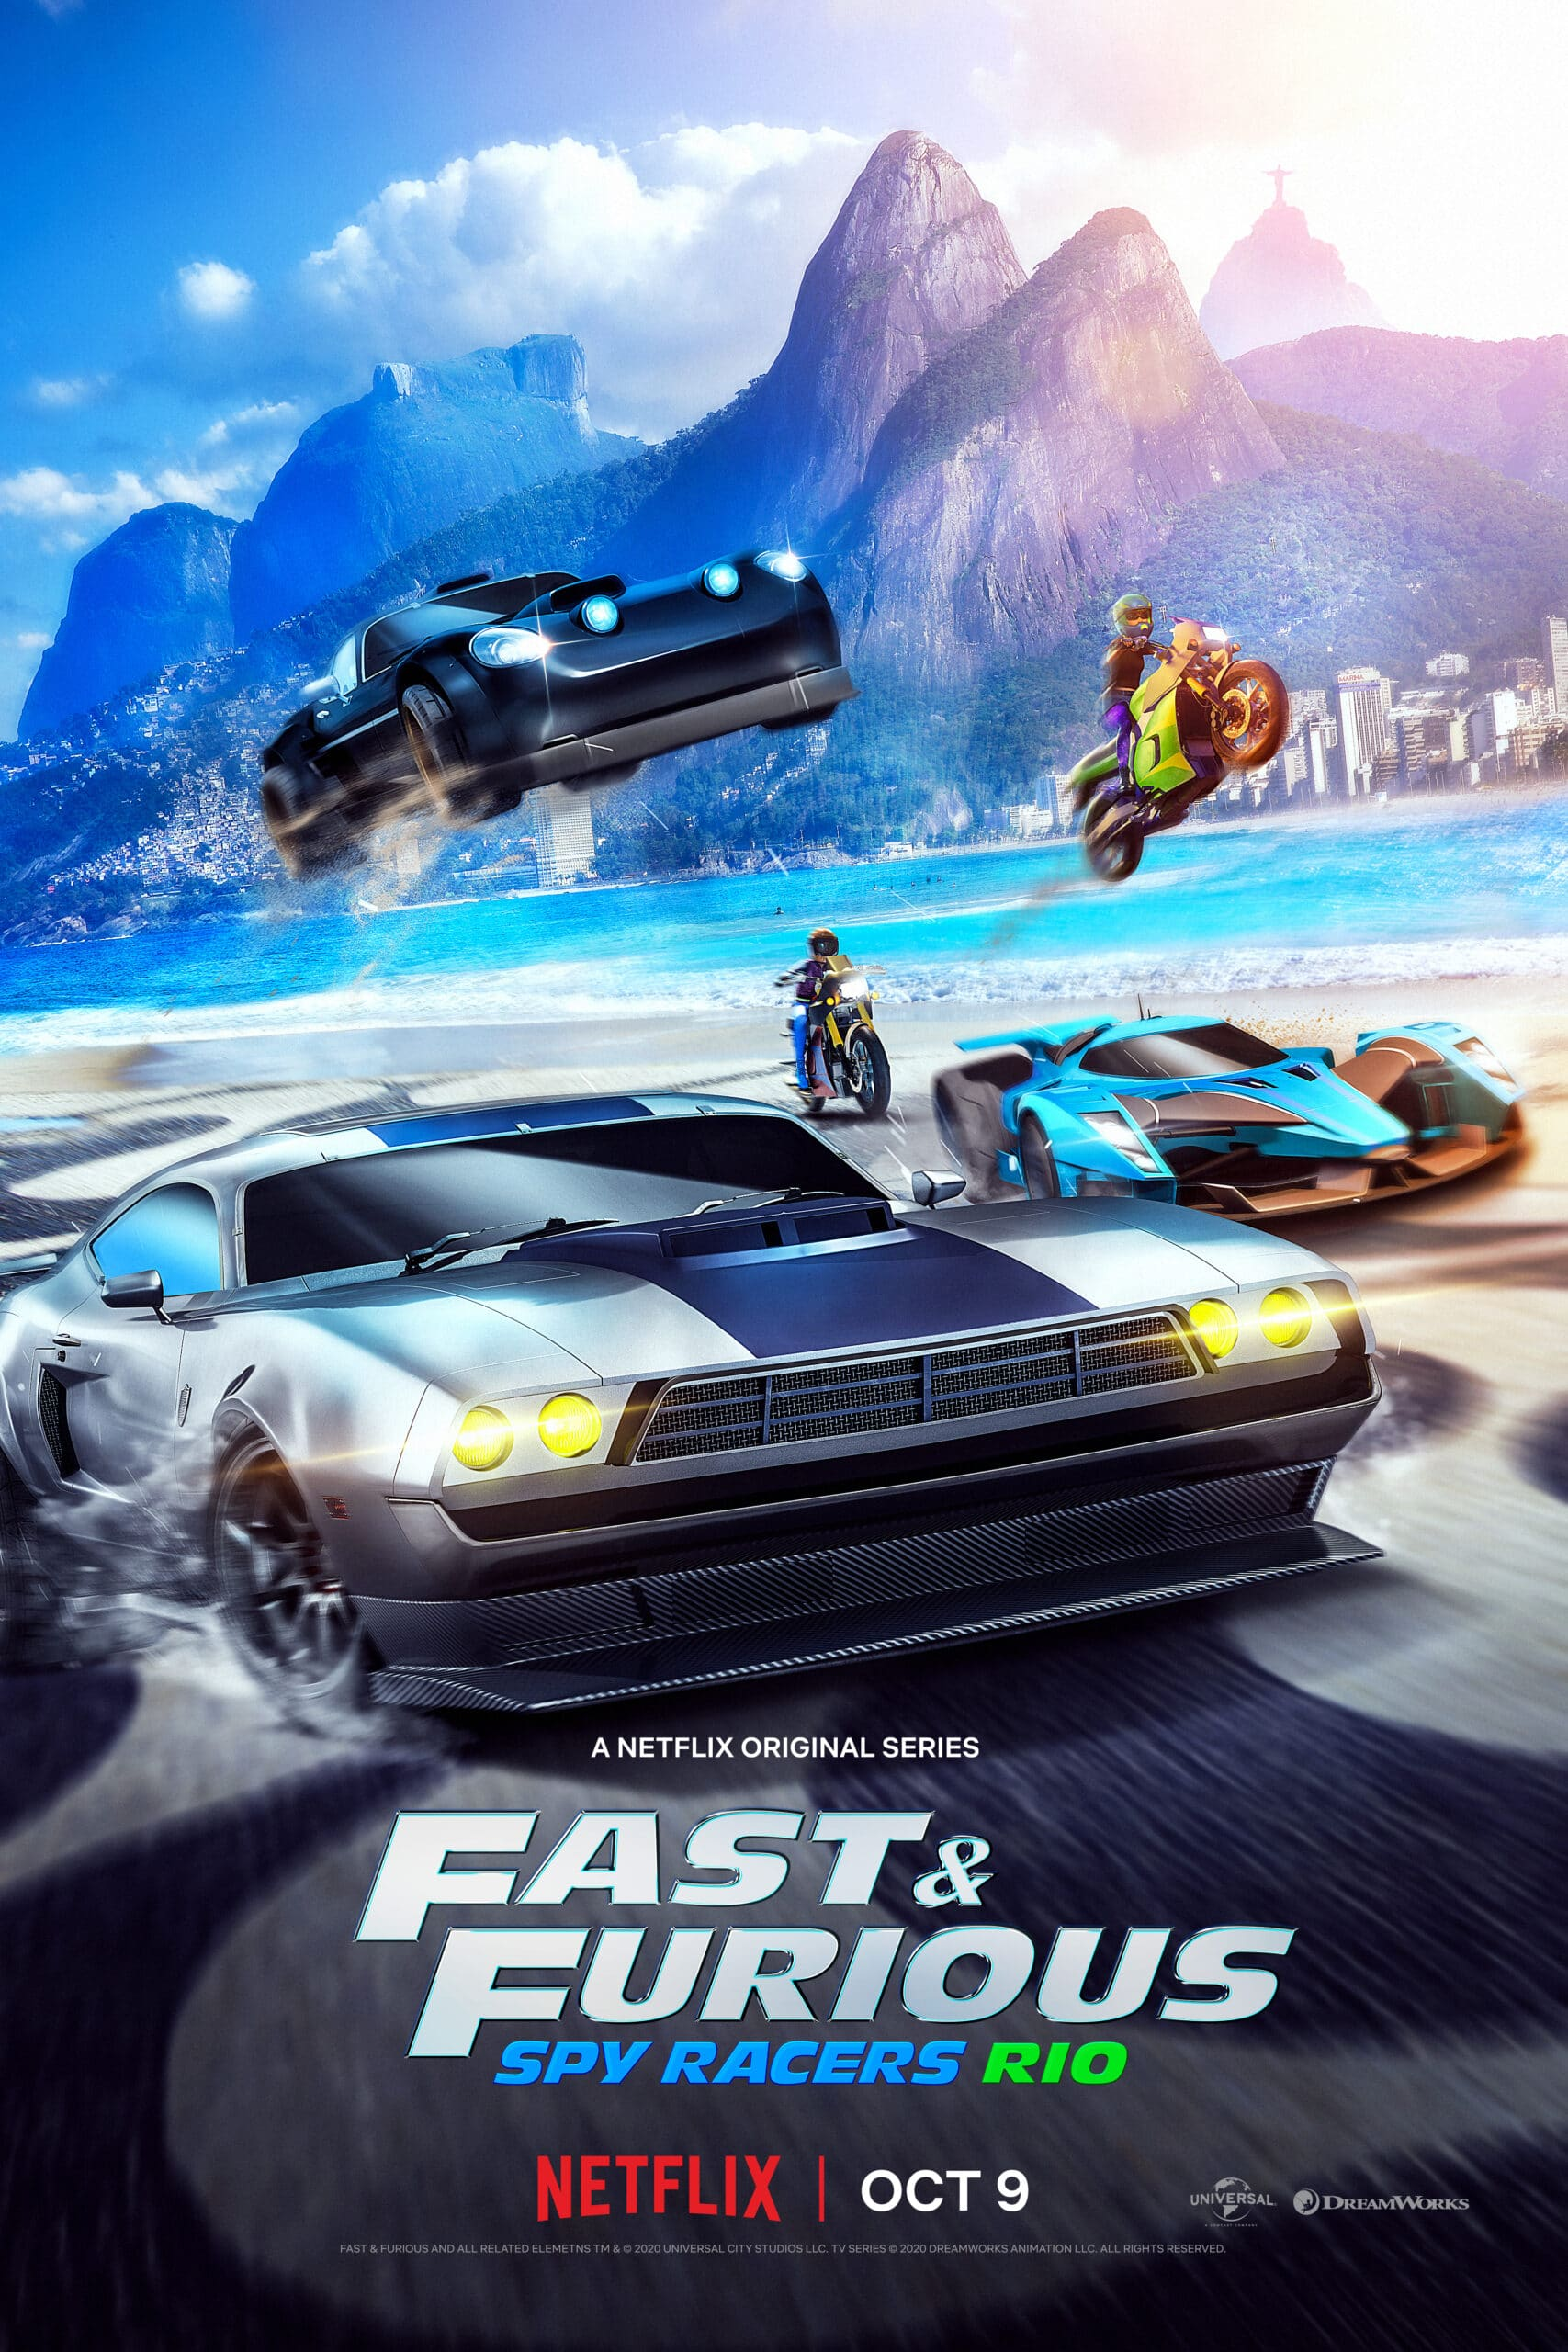 Fast & Furious: Spy Racers Trailer. Universal and DreamWorks Animation have released the second season trailer for the hit Netflix Original seriesFast & Furious: Spy Racers, which finds the team heading to Rio de Janeiro on October 9. Check out the full trailer below, as well as more information about what to expect in Season 2